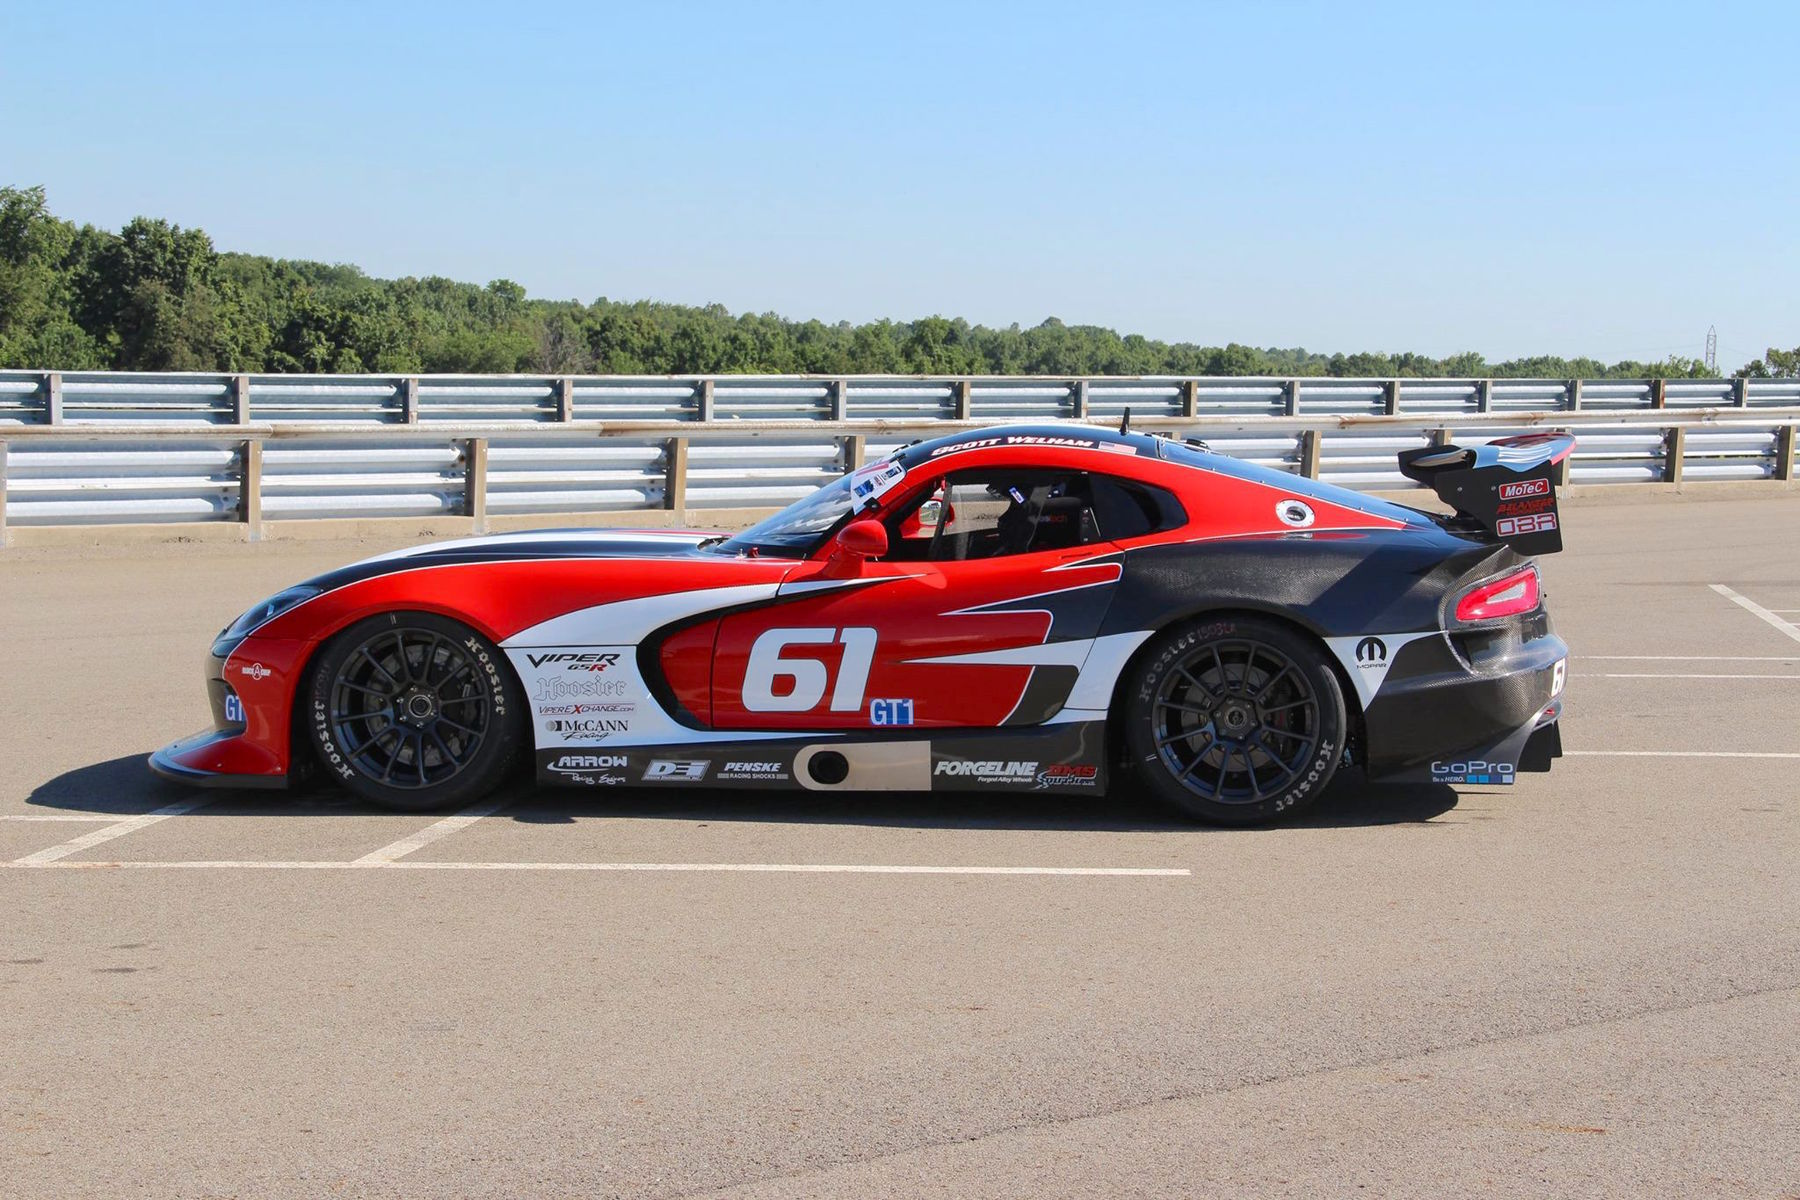 2014 Dodge Viper | McCann G5R Viper on Forgeline GTD1 Wheels